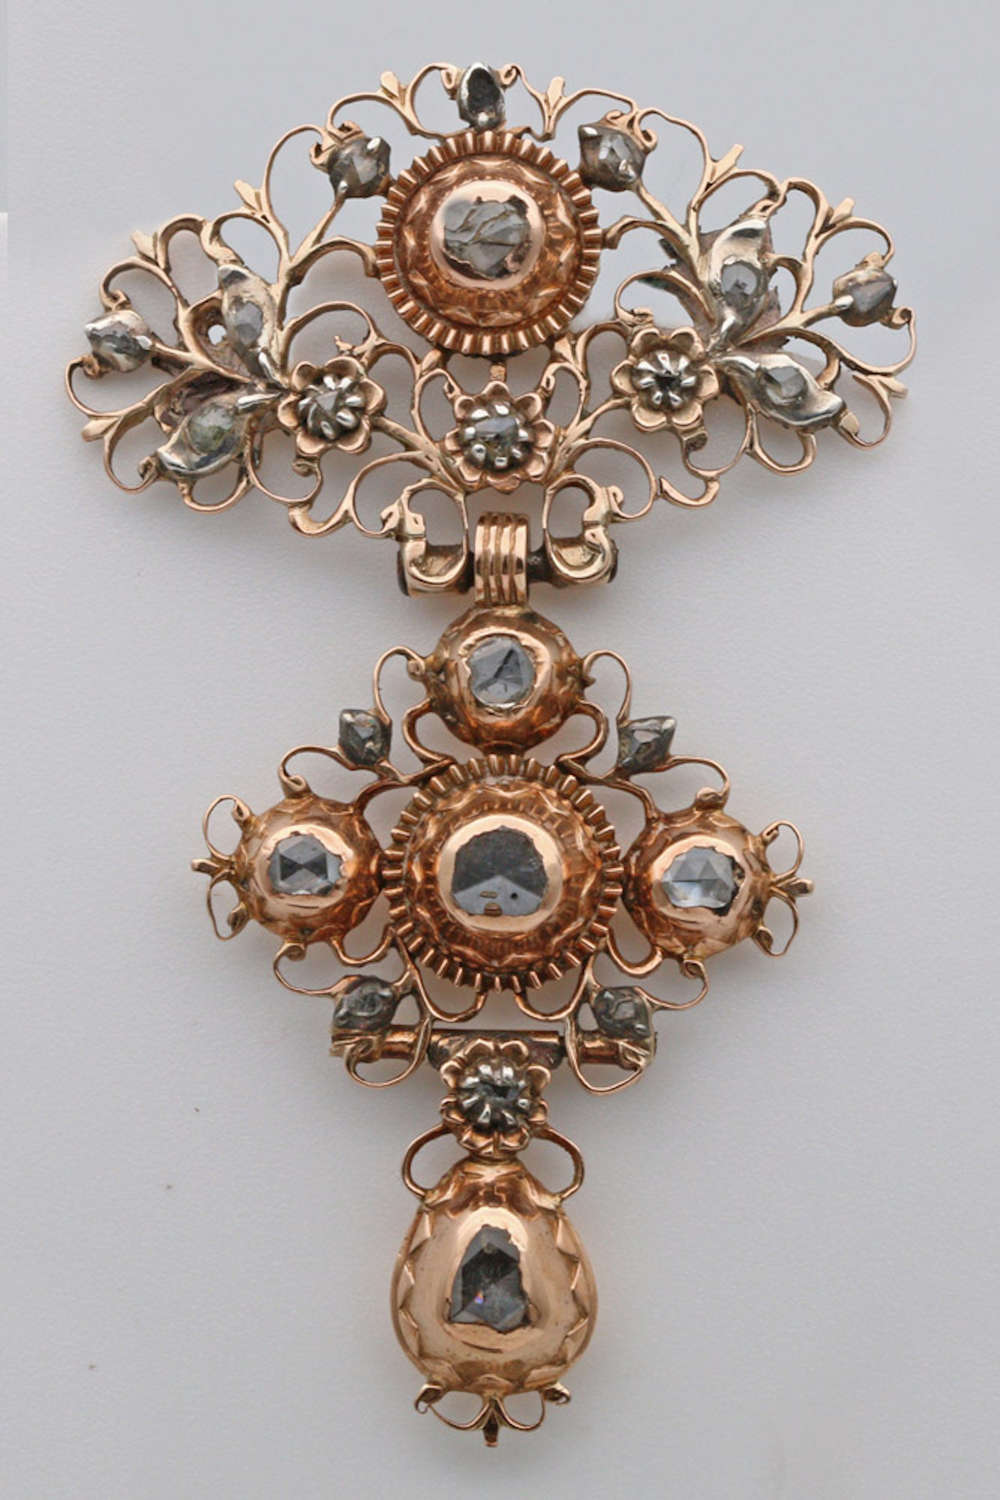 18th Century gold and diamond brooch